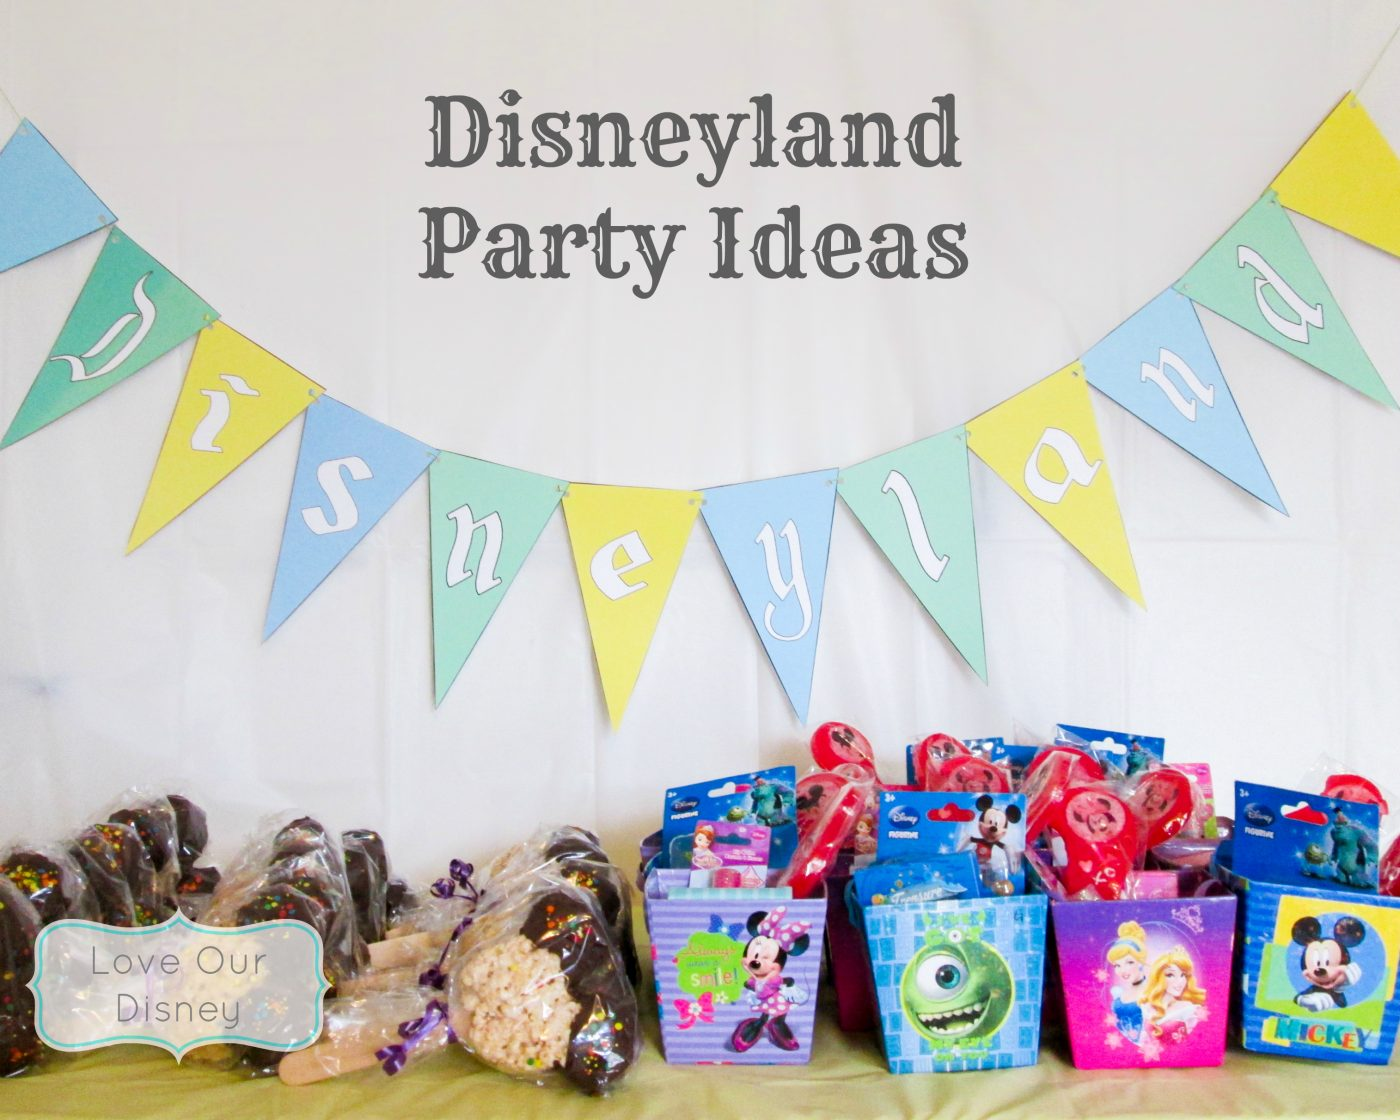 Disneyland Party Theme Ideas | This Crazy Adventure Called Life